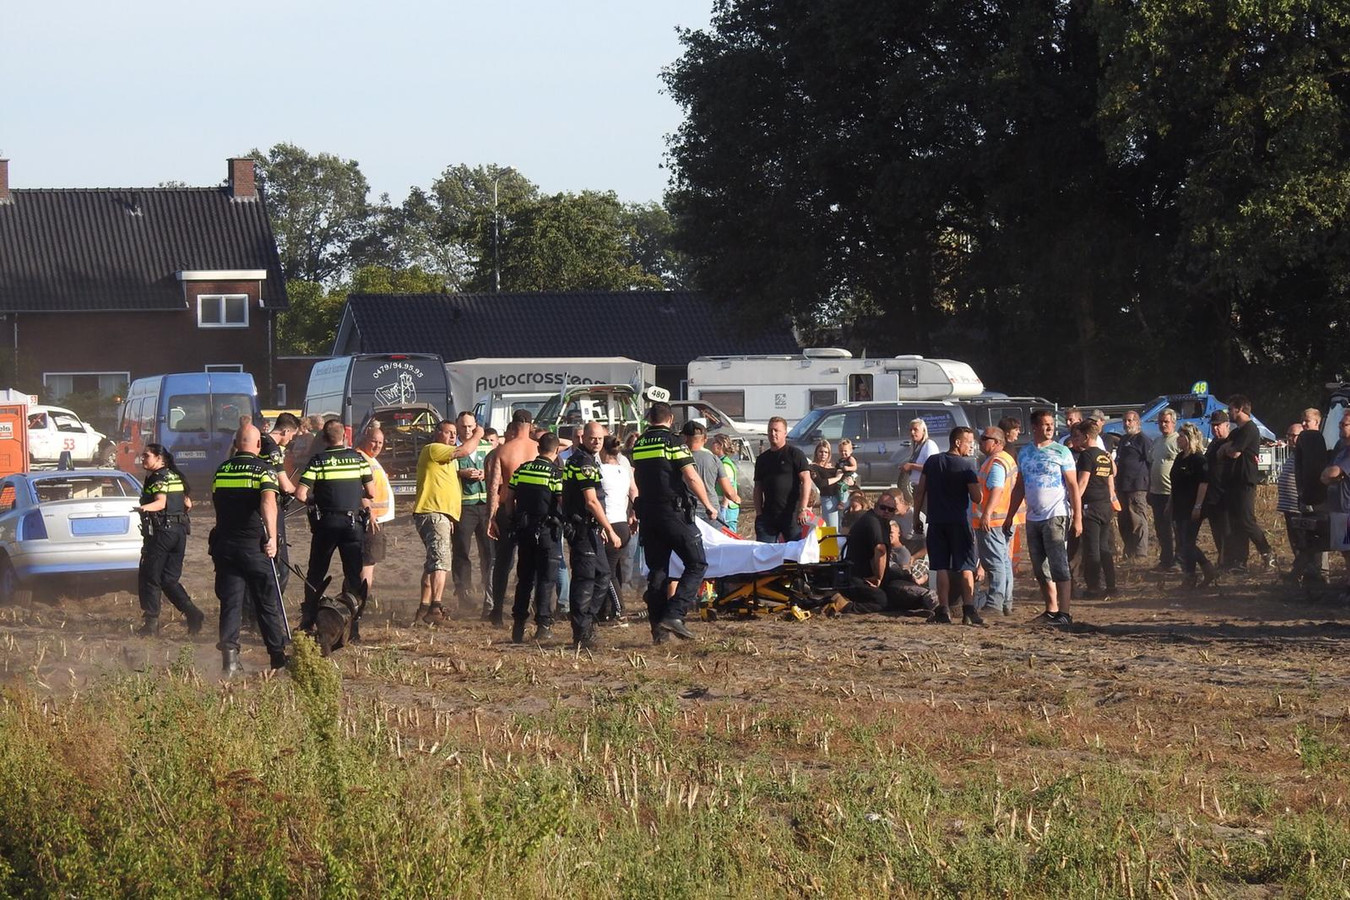 De chaos na het incident in Leende